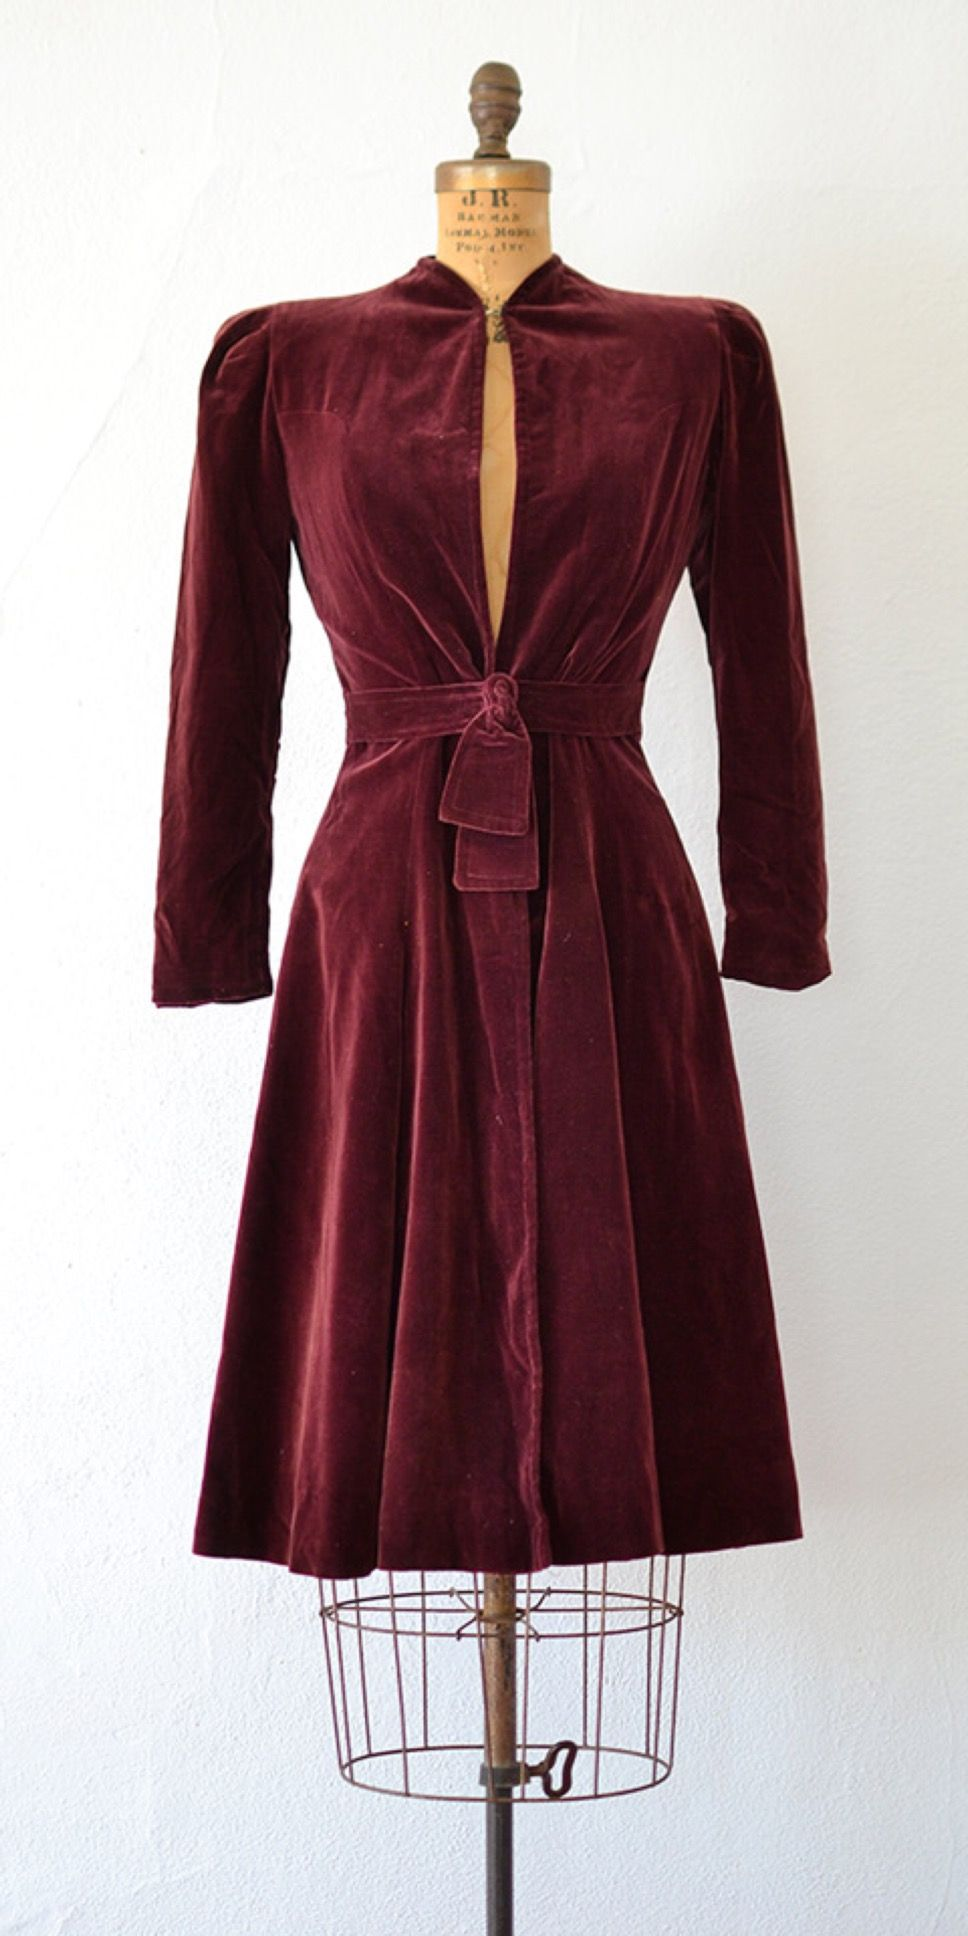 vintage 1930s 1940s dress // Viewing at Louvre Dress // www.adoredvintage.com